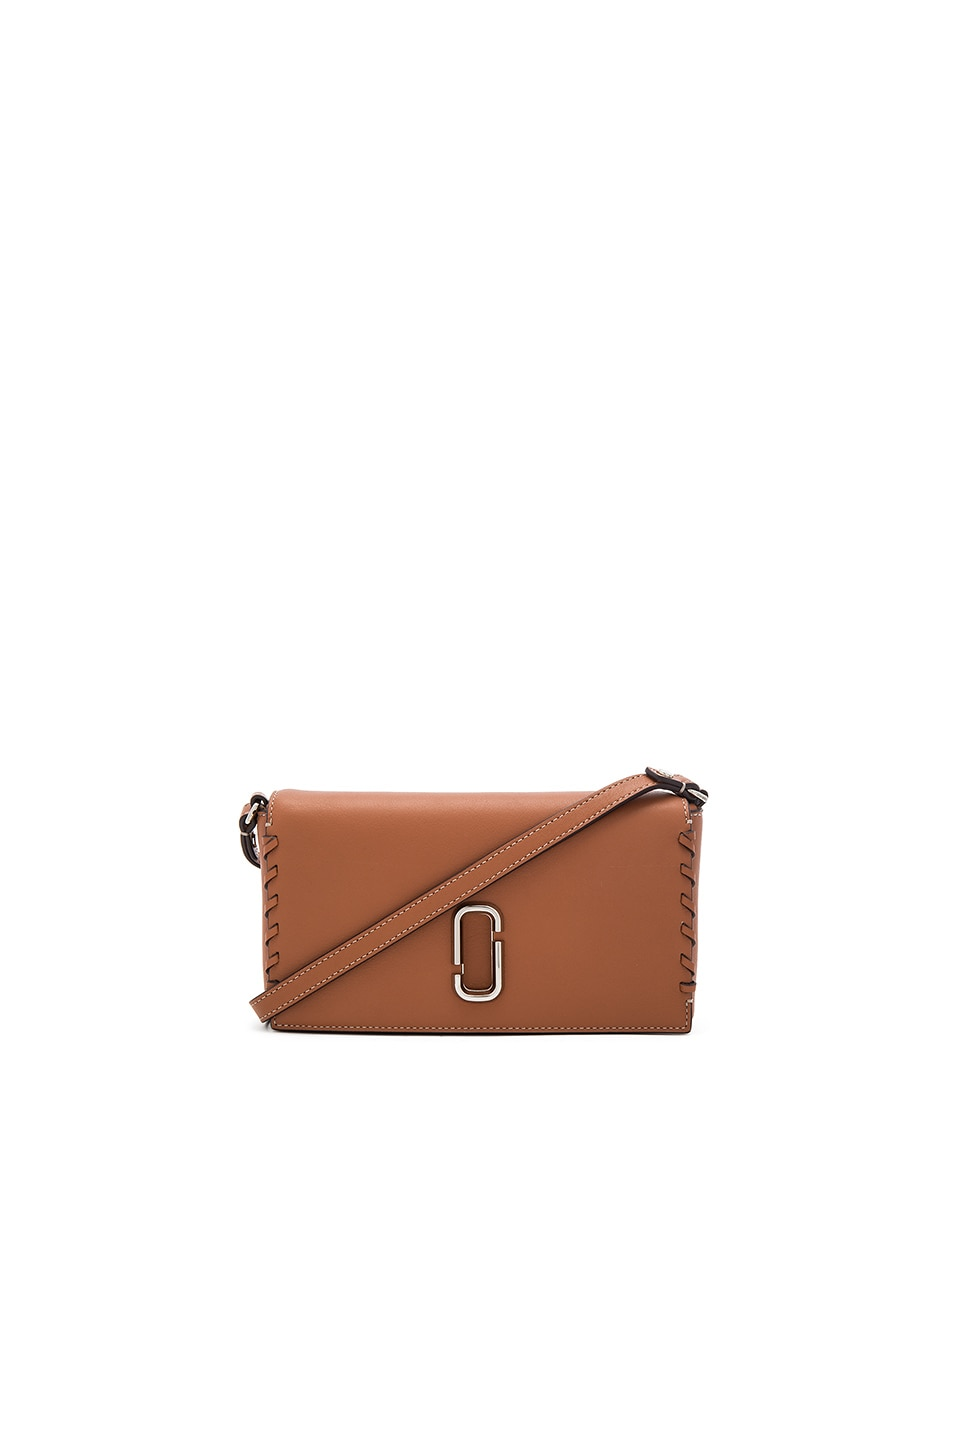 Marc Jacobs Noho Small Crossbody Bag in Caramel Cafe